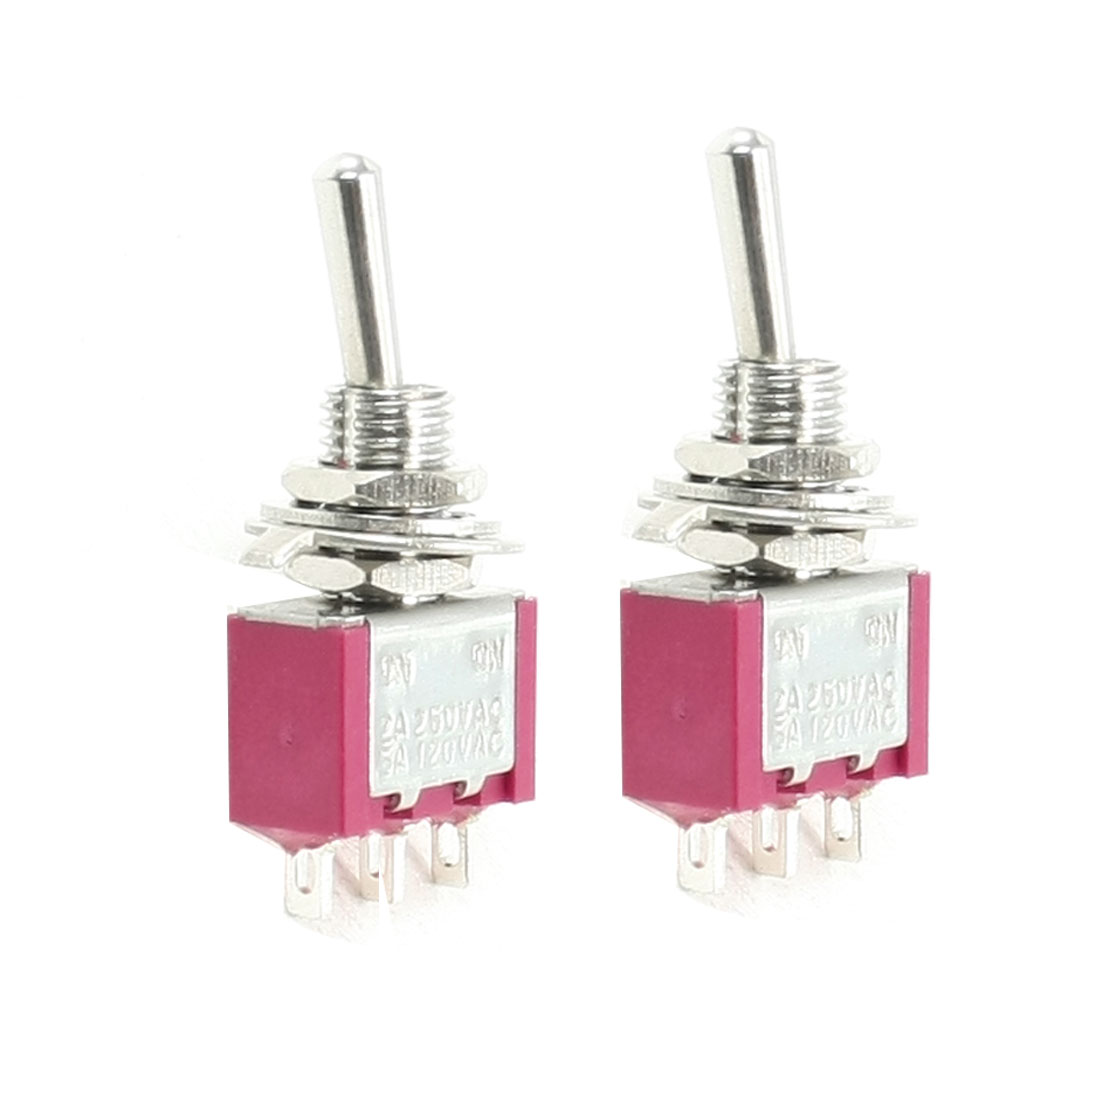 2 Pcs ON/ON DPDT 3-Terminals MTS-102 Type Toggle Switch 5A/125VAC 2A/250VAC